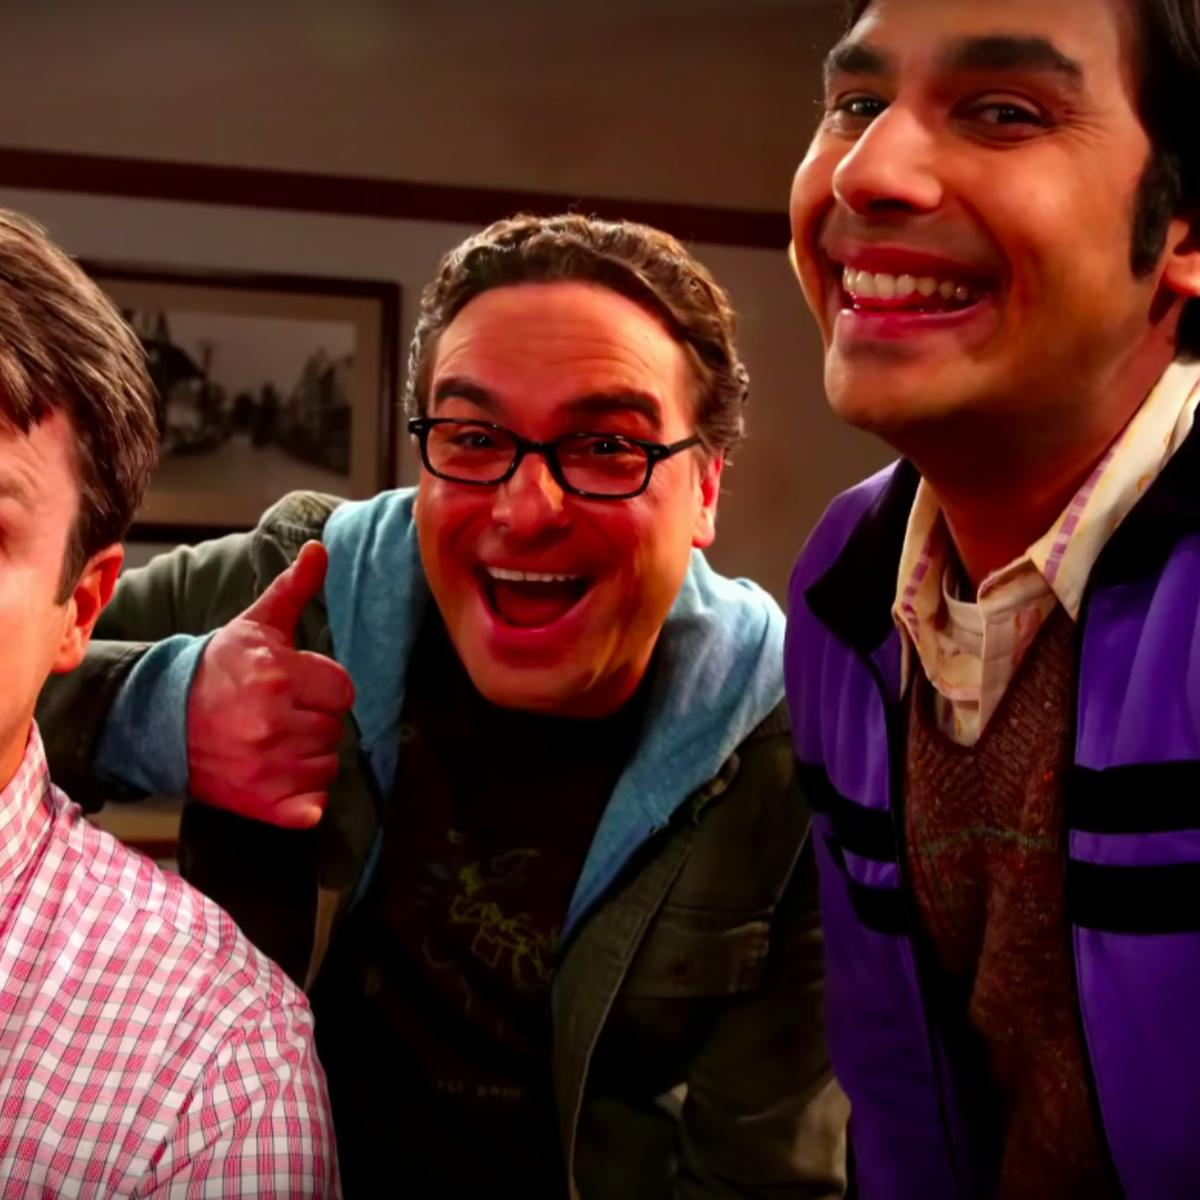 CBSu0027s nerd sitcom The Big Bang Theory calling it quits after upcoming 12th season  sc 1 st  Syfy & CBSu0027s nerd sitcom The Big Bang Theory calling it quits after ...